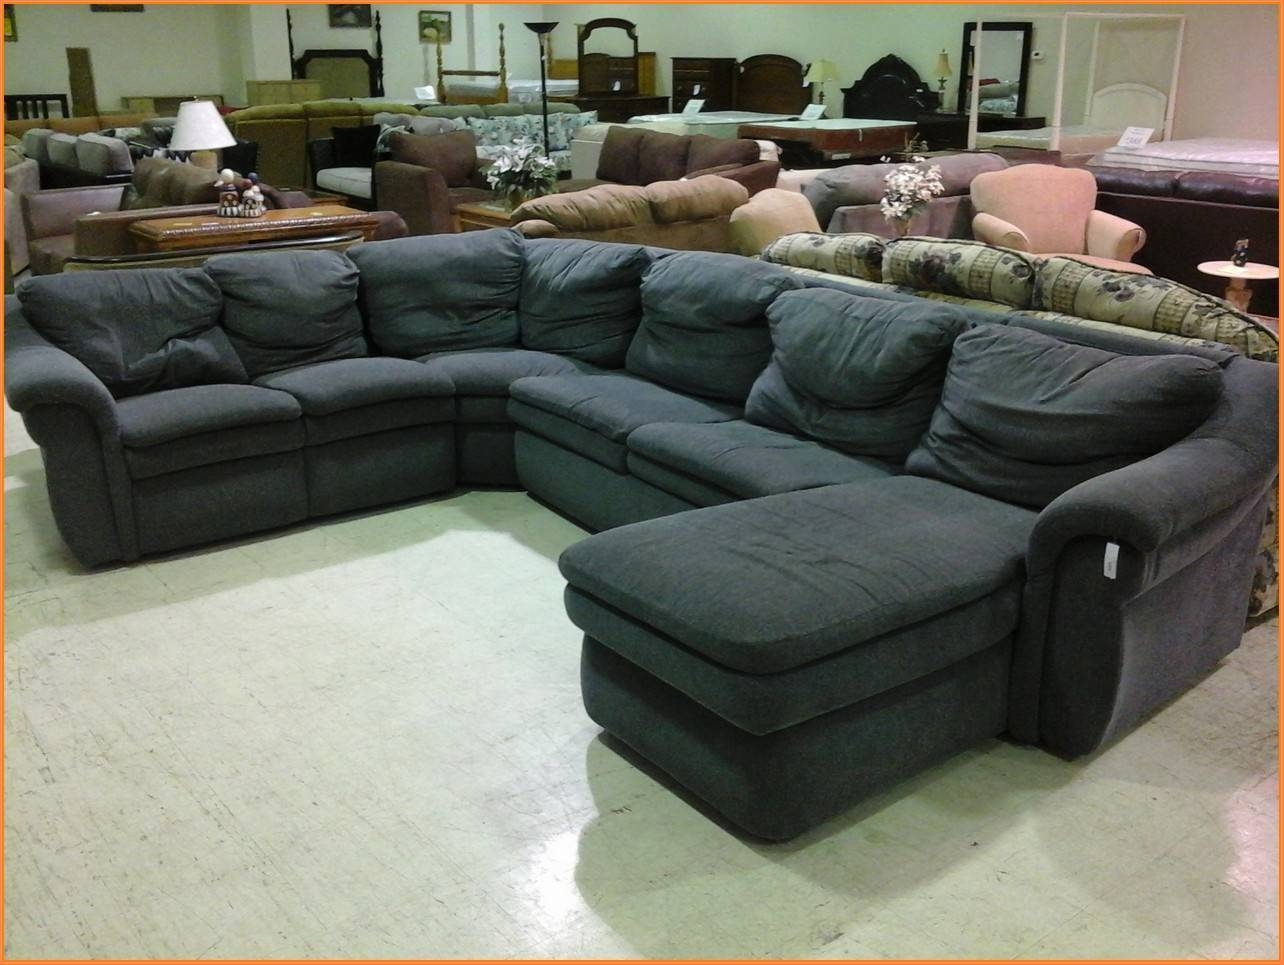 sofas center lazy boy sectional sofas stunning sleeper sofa on within lazyboy sectional sofa